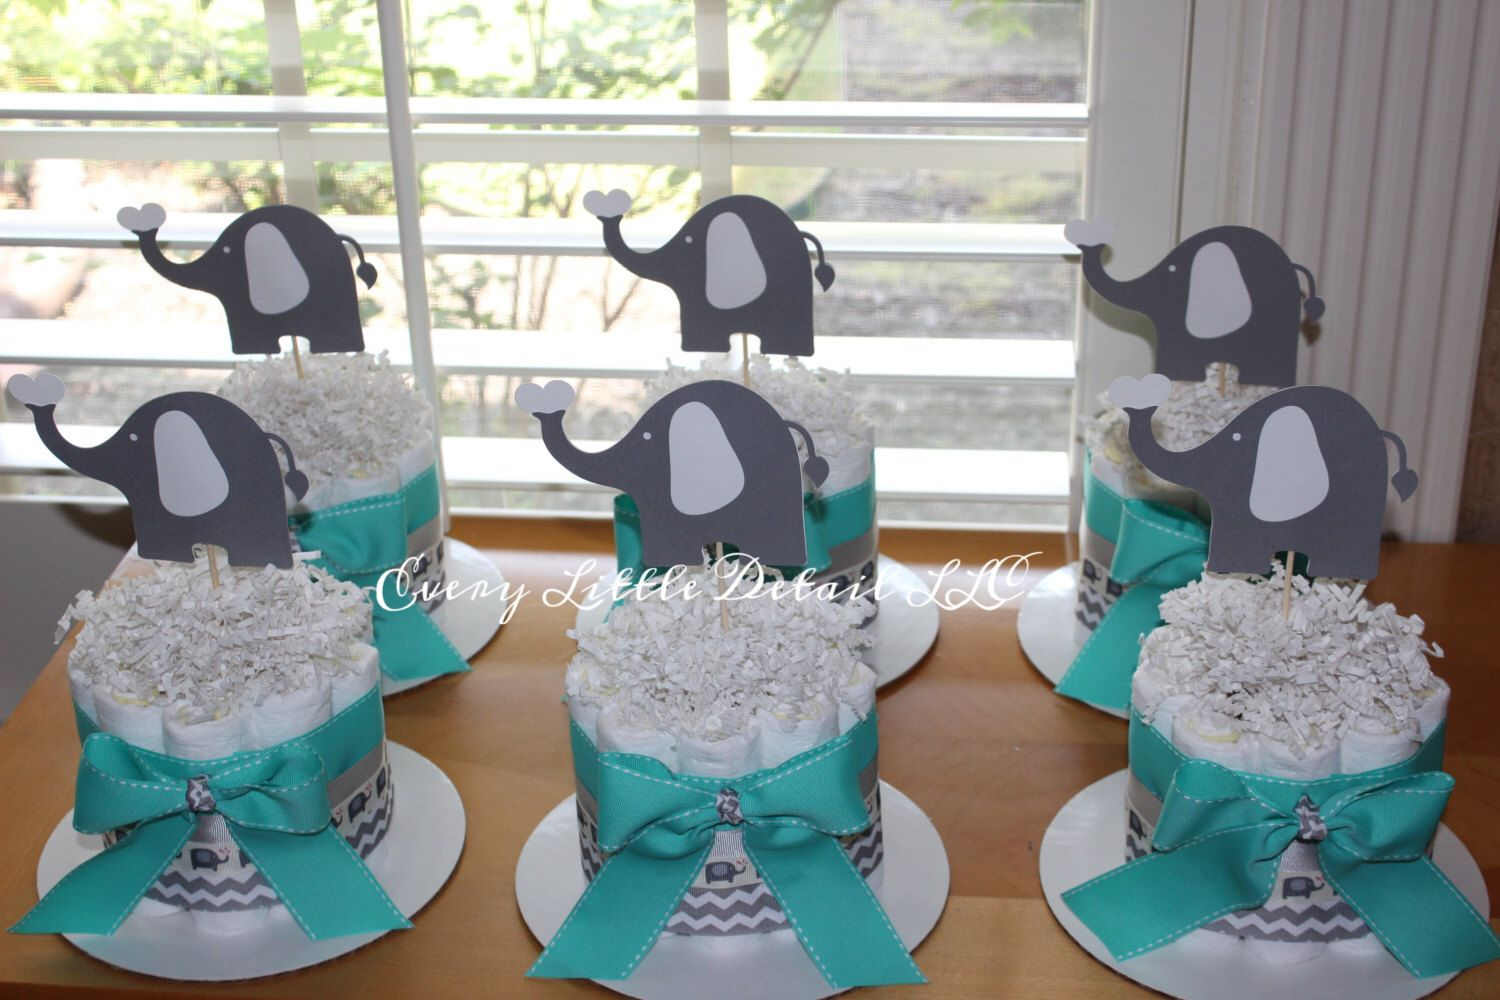 Fancy Elephant Mini Diaper Cake Bundle; Elephant Theme Diaper Cake with Elephant Themed Baby Shower Decorations